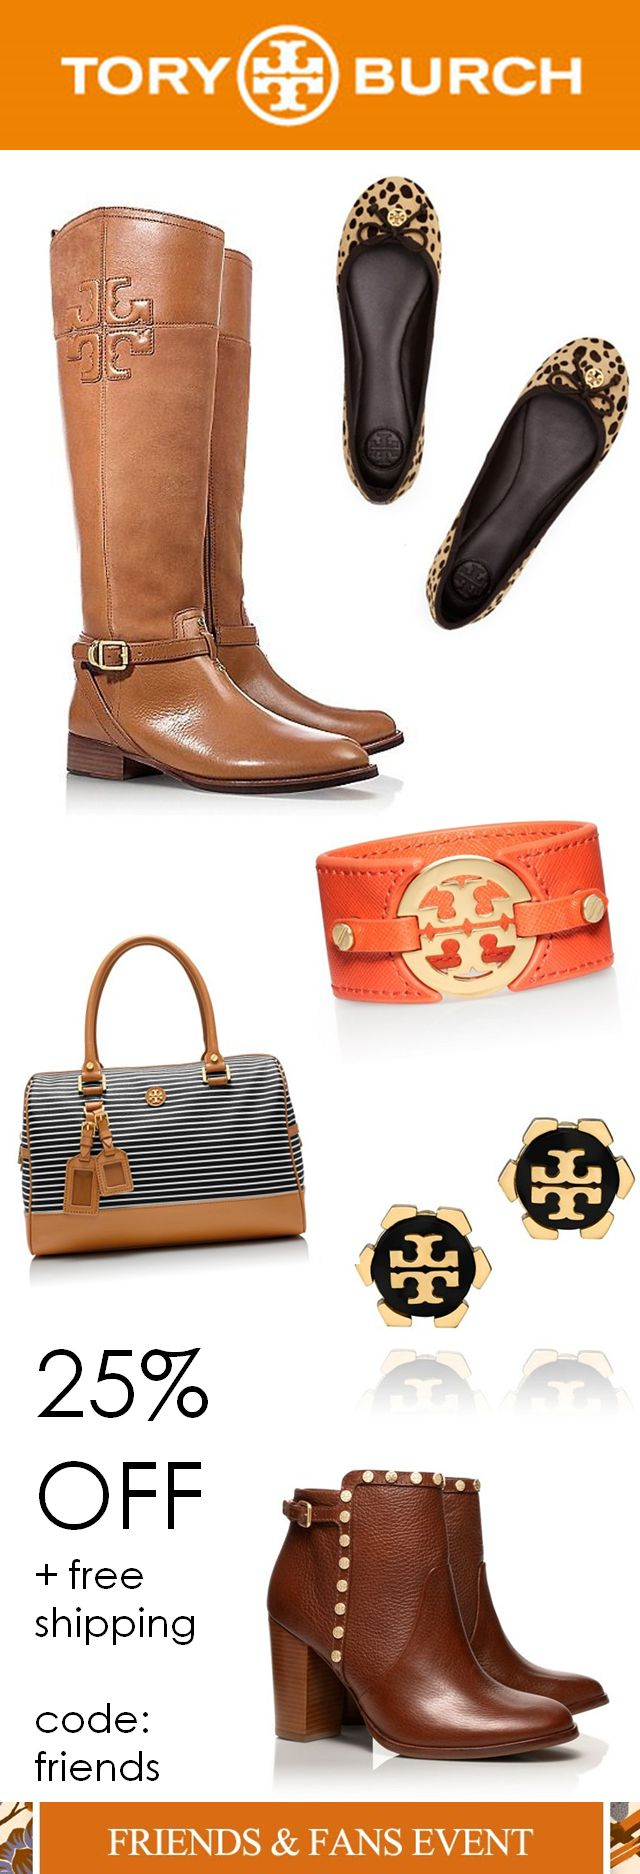 Enjoy 25% OFF at the Tory Burch 'friends & family sale' when you